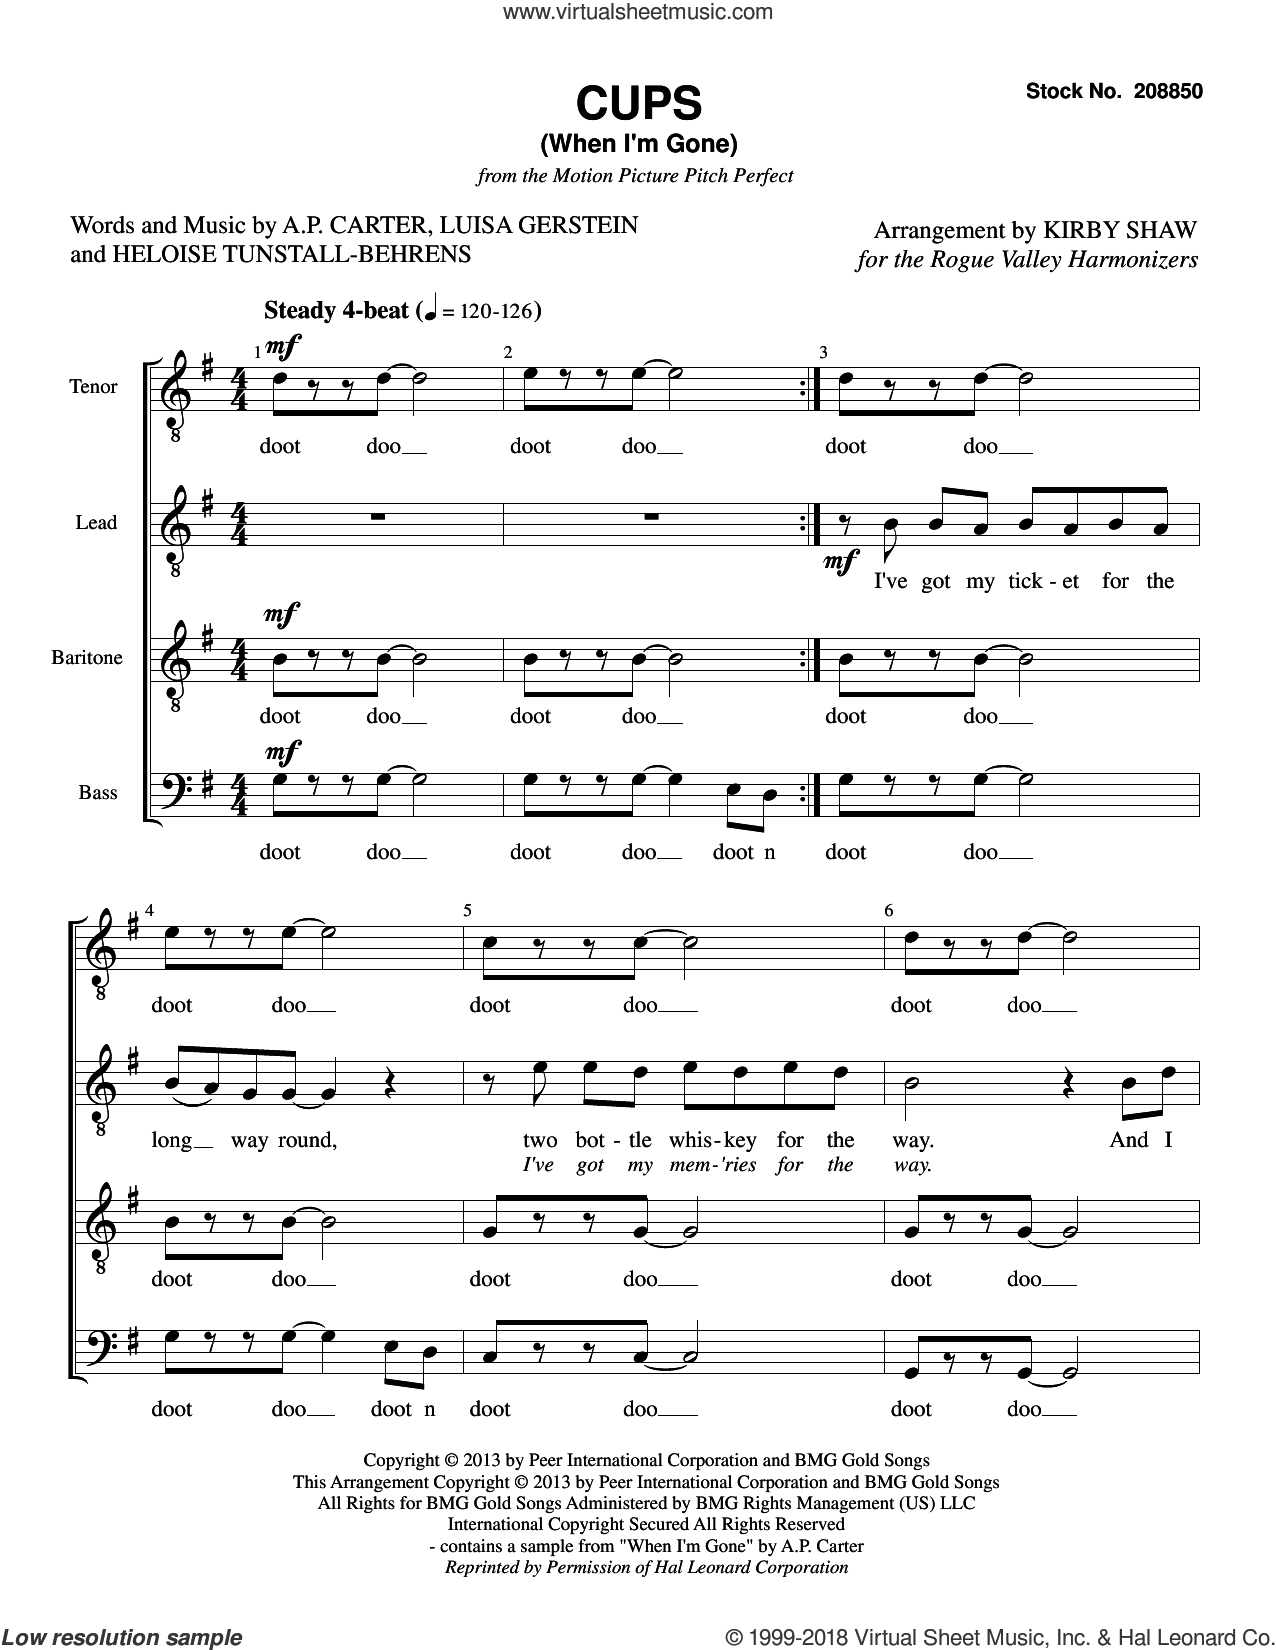 Cups (When I'm Gone) (from Pitch Perfect) (arr. Kirby Shaw) sheet music for choir (TTBB: tenor, bass) by Anna Kendrick, Kirby Shaw, A.P. Carter, Heloise Tunstall-Behrens and Luisa Gerstein, intermediate skill level